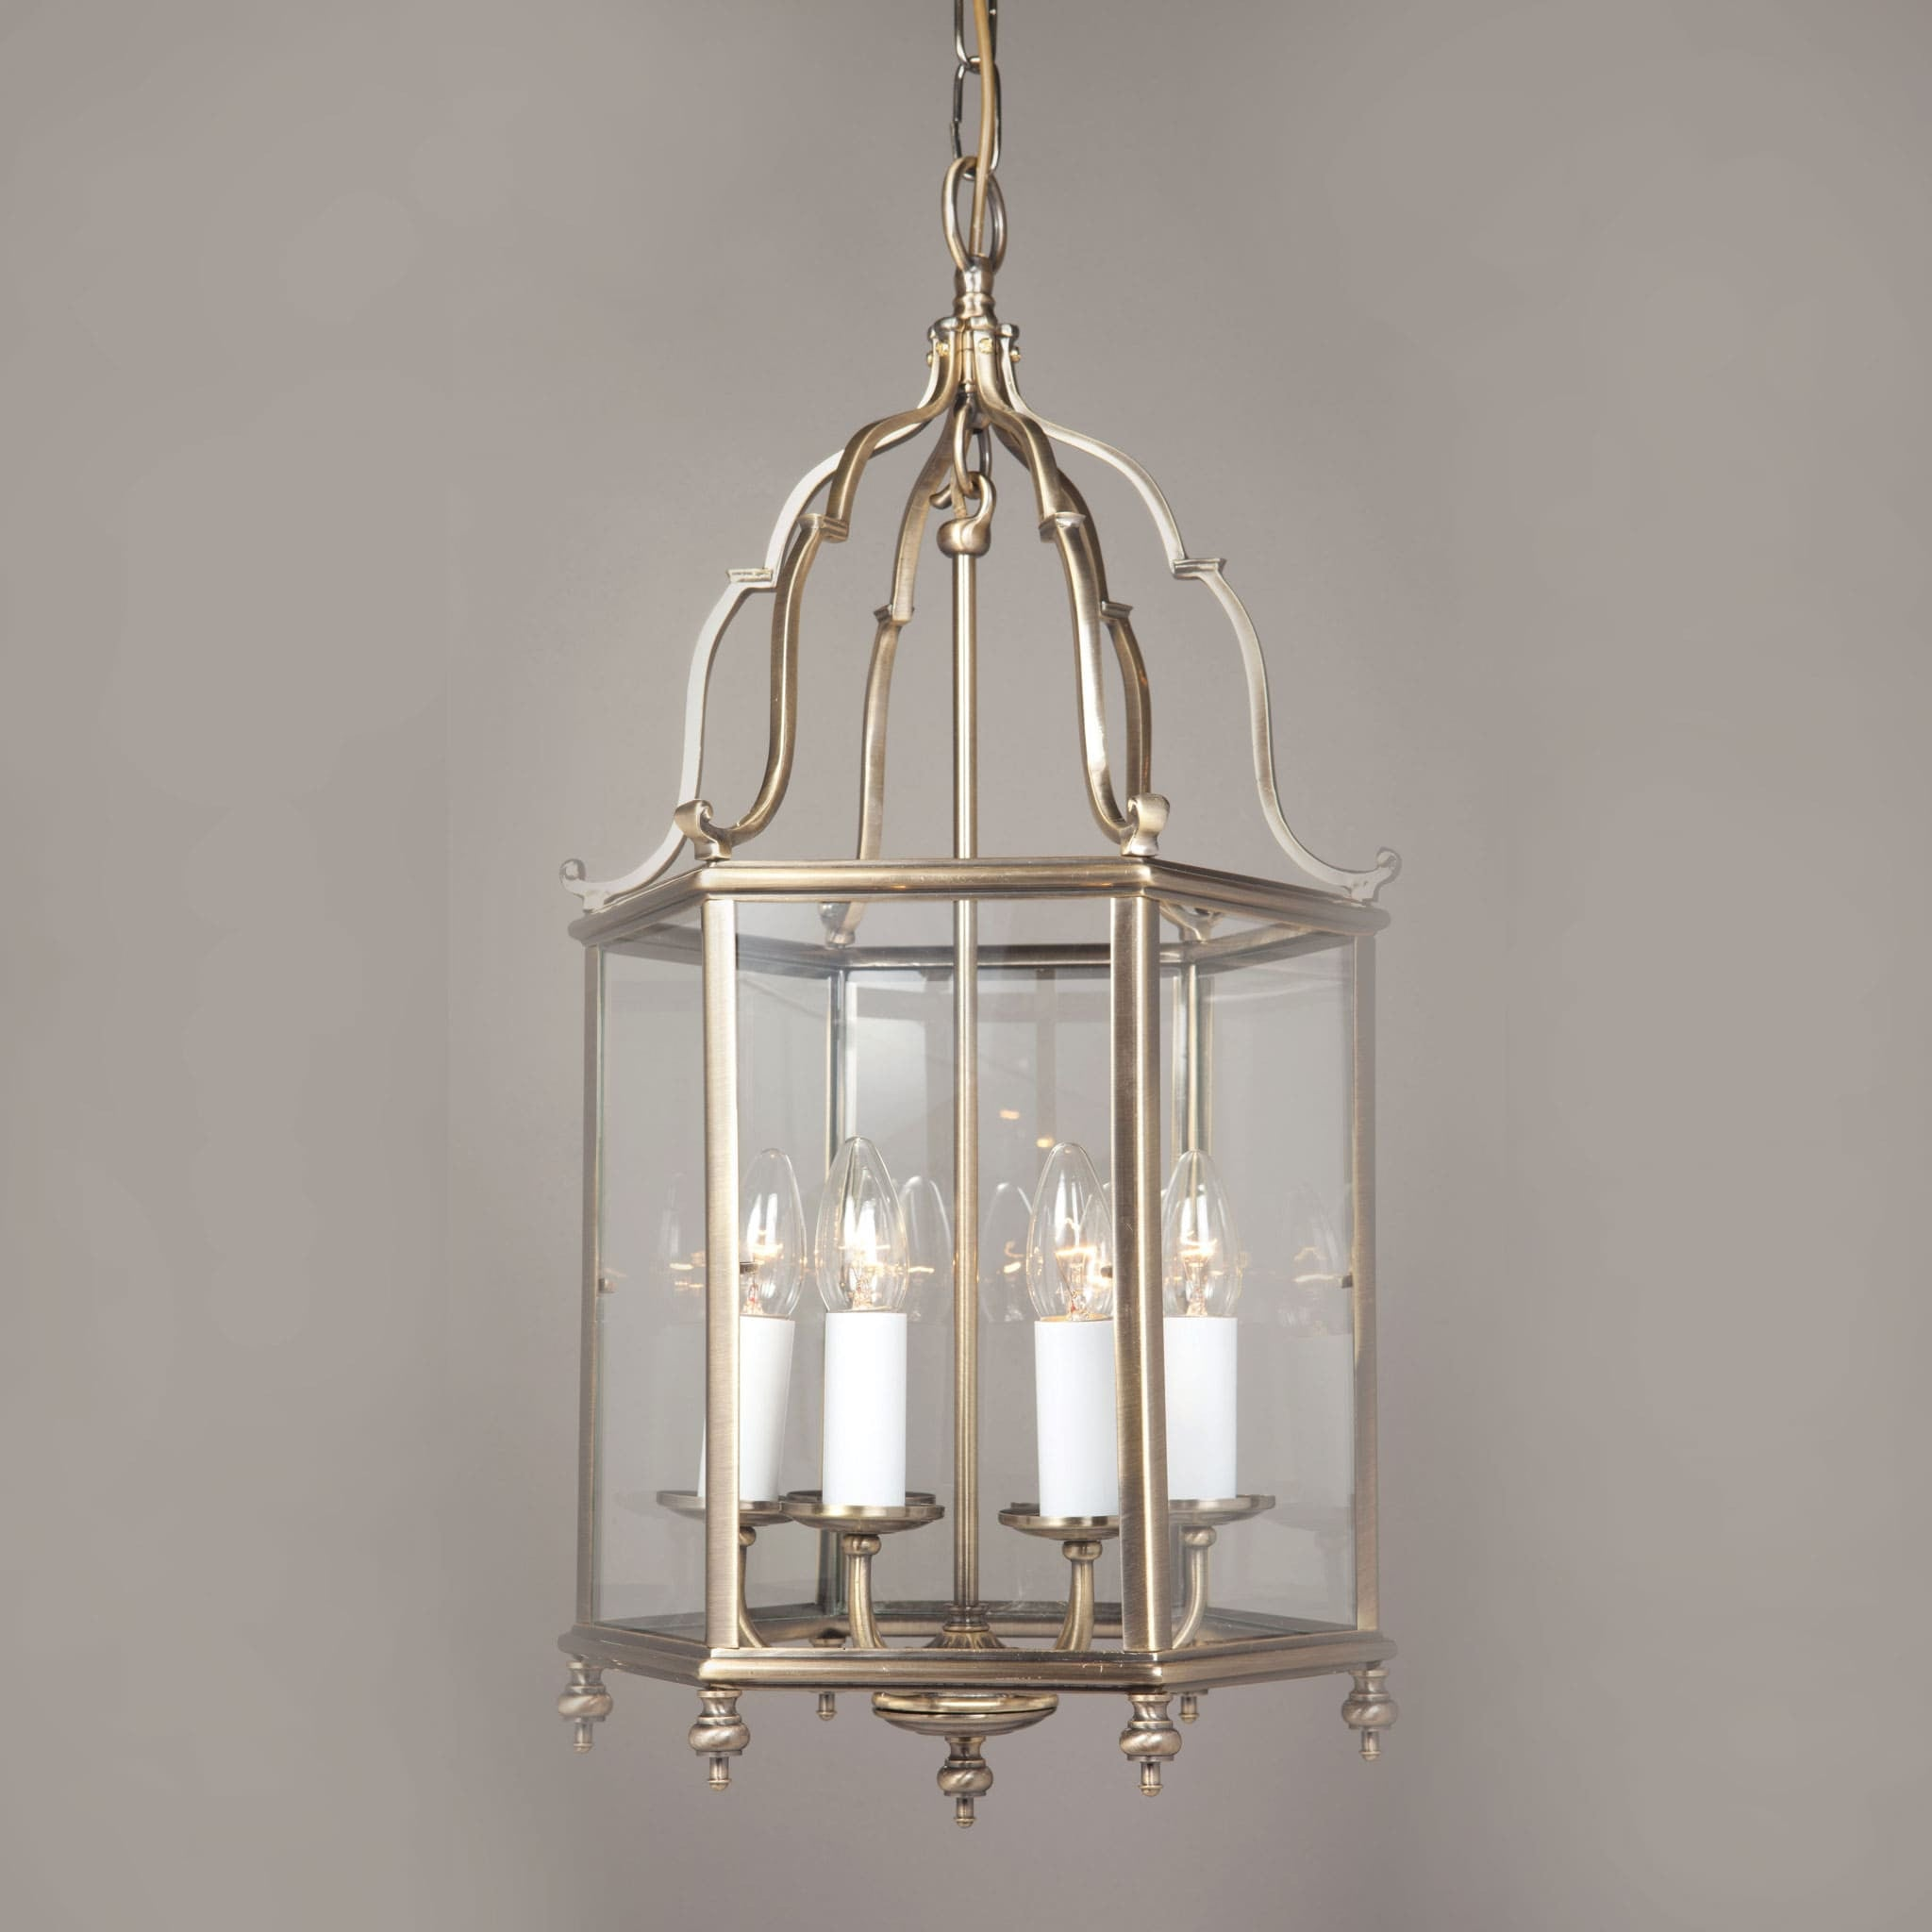 metal hanging looking grey lantern light old ideas traditional with style lamp fixture nautical solid pendant chain